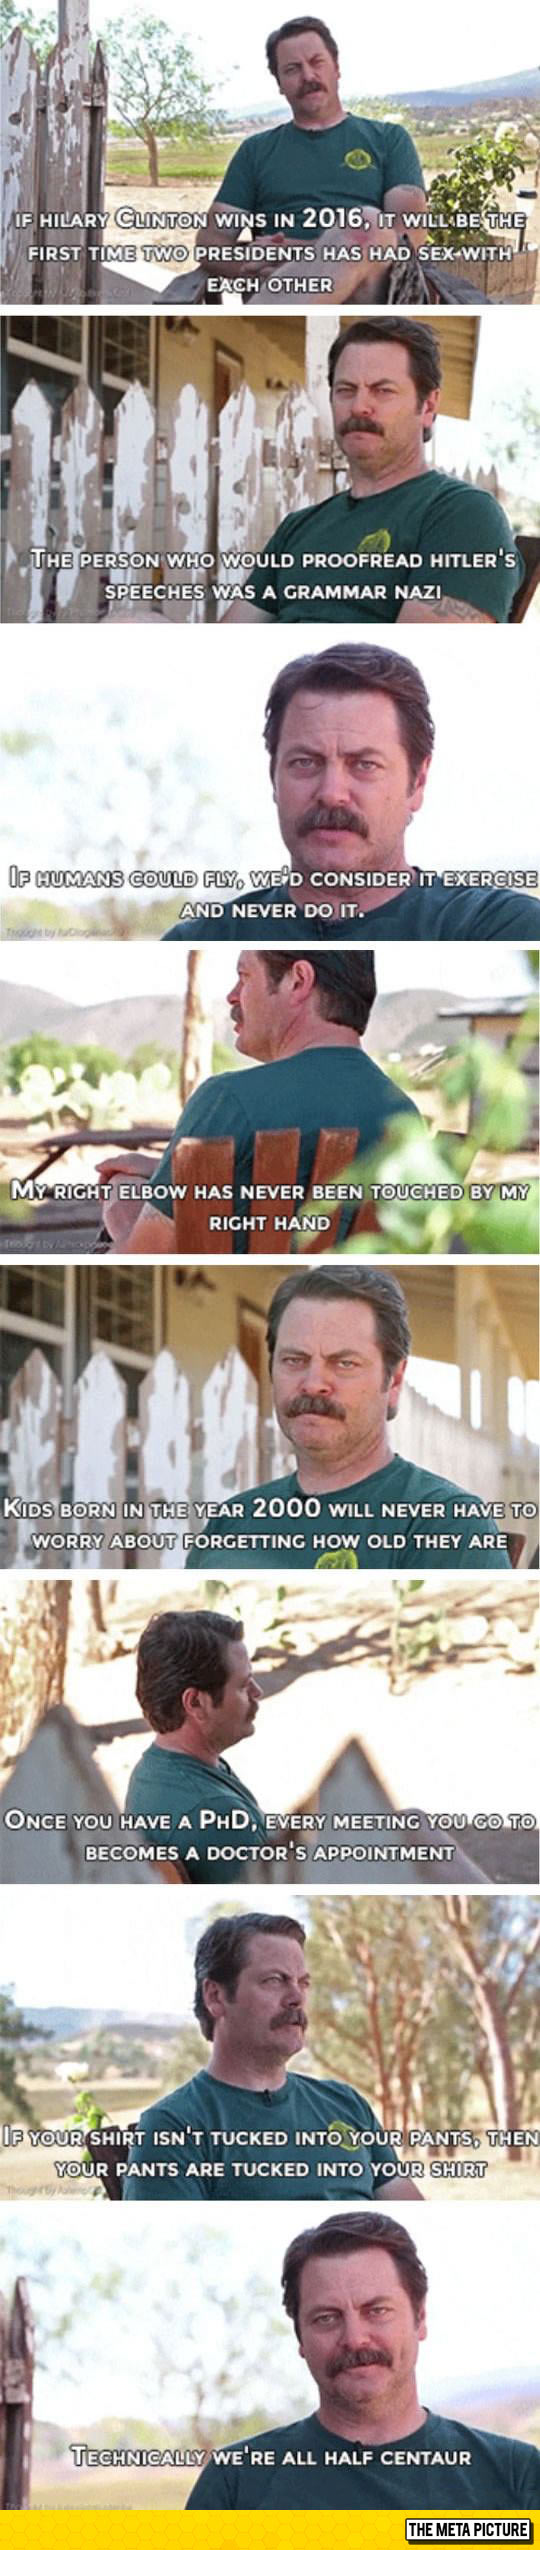 funny-Ron-Swanson-shower-thoughts-quotes